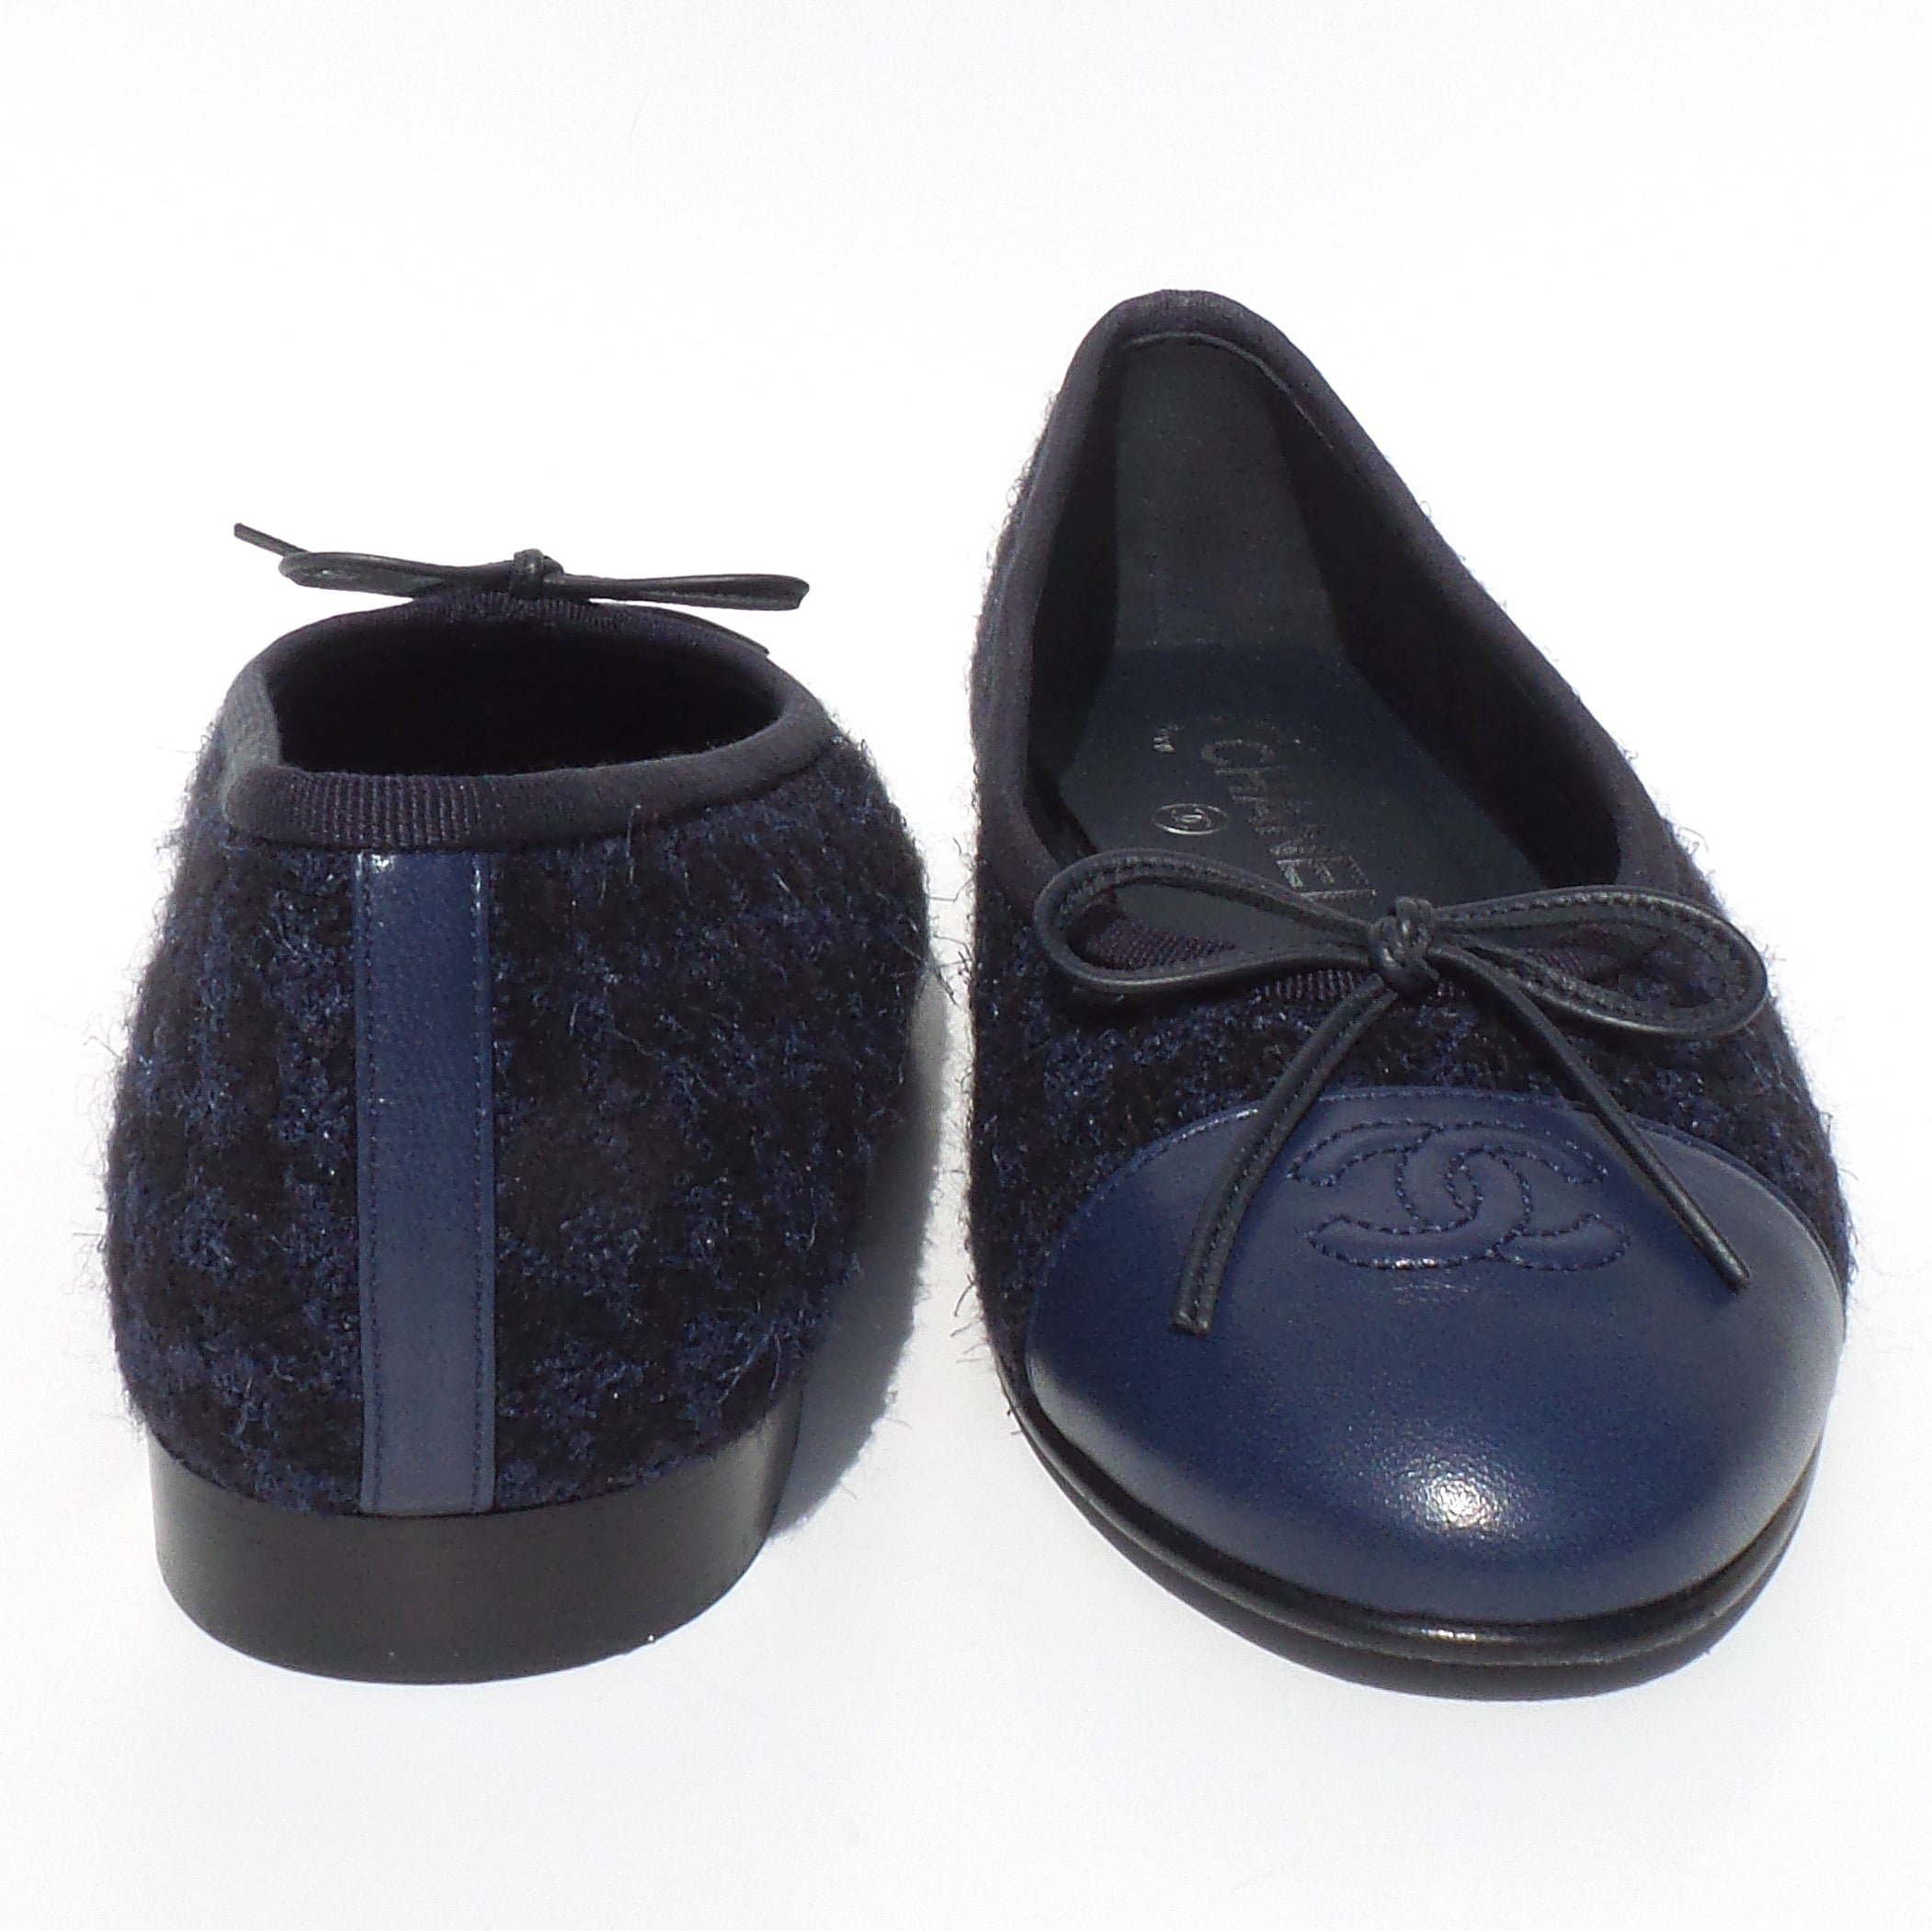 CHANEL Navy Blue Black Houndstooth Tweed CC Leather Cap Toe Ballet Flats 37.5 GC